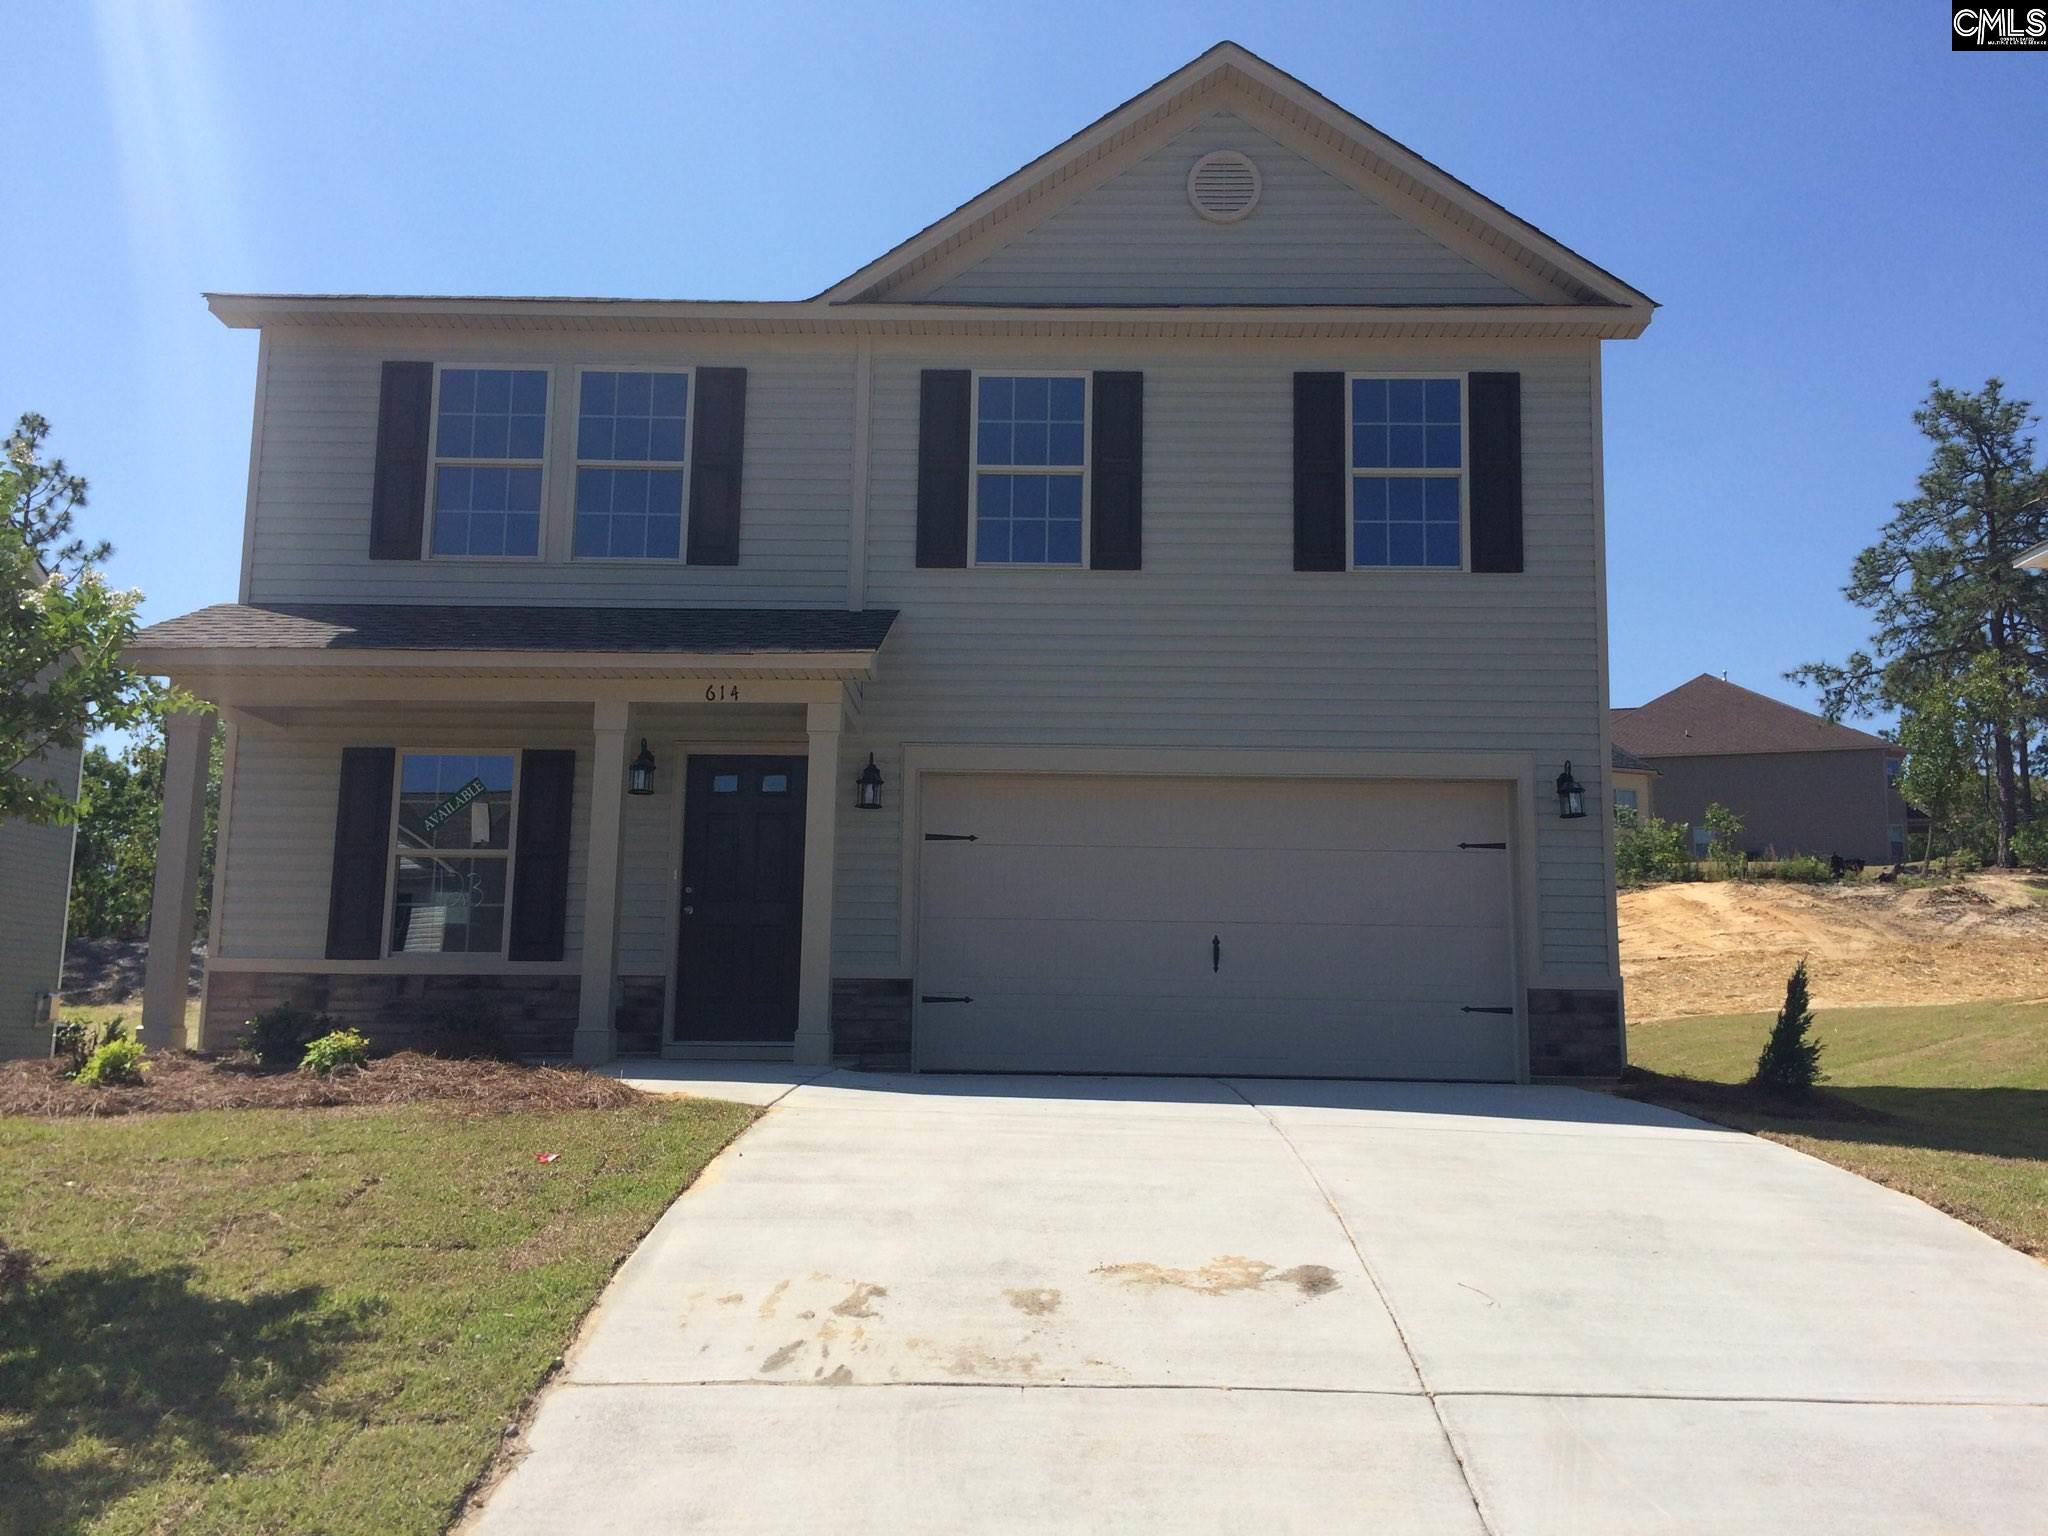 614 Teaberry Columbia, SC 29229